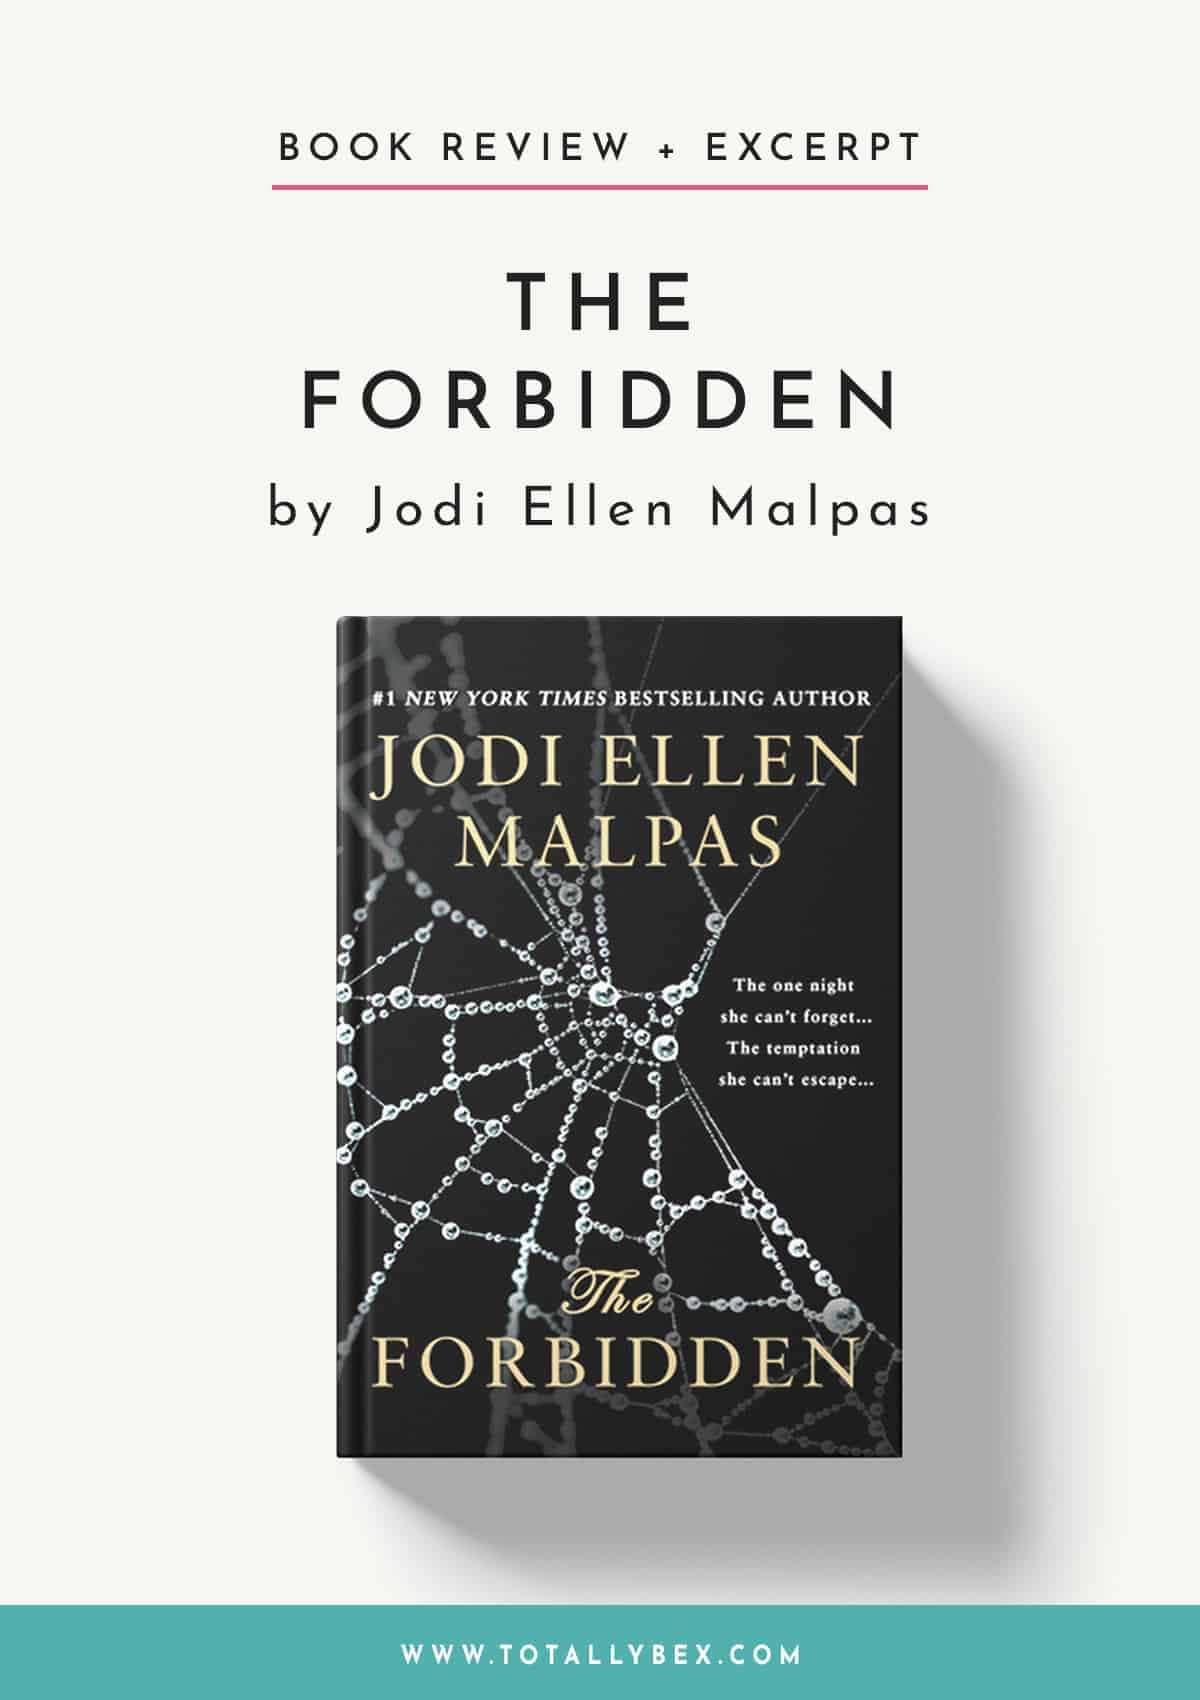 The Forbidden by Jodi Ellen Malpas-Book Review+Excerpt